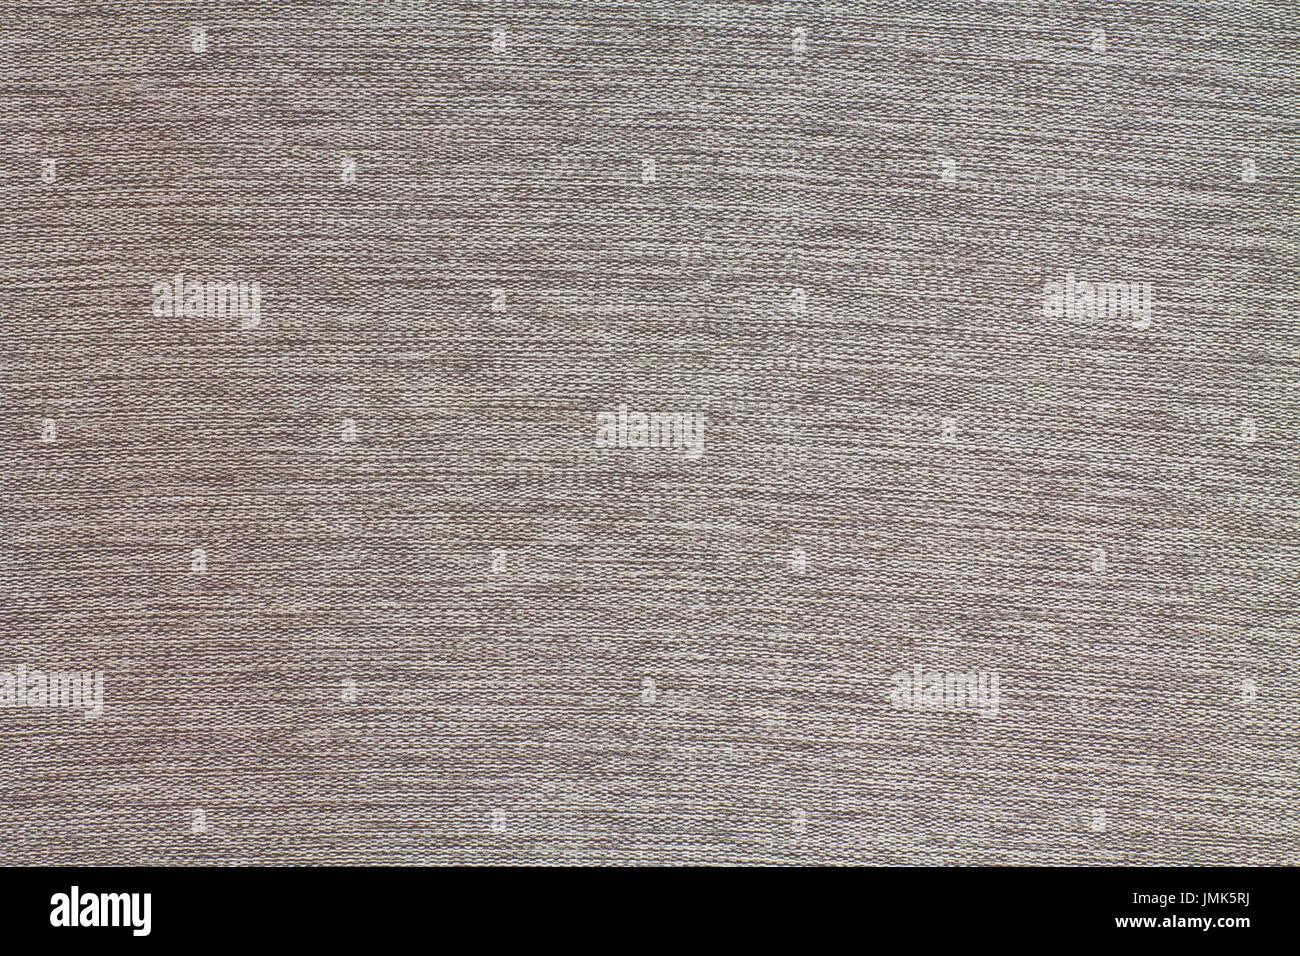 Texture of gray fabric from viscose - Stock Image